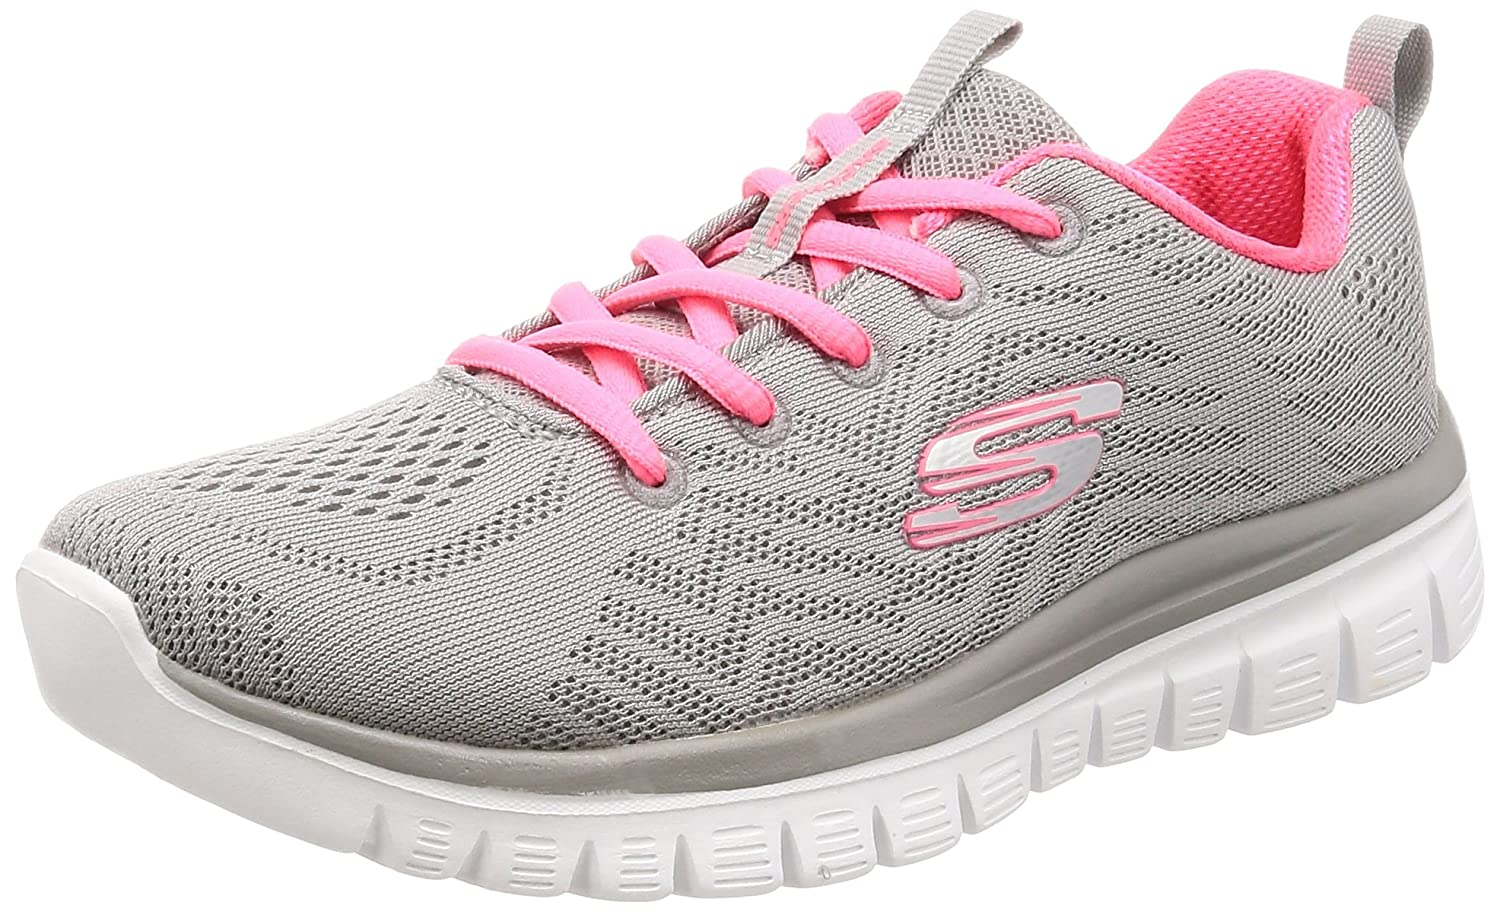 Skechers Women's Graceful-Get Connected Sneaker B076PYJ3J5 6.5 B(M) US|Grey/Charchoal